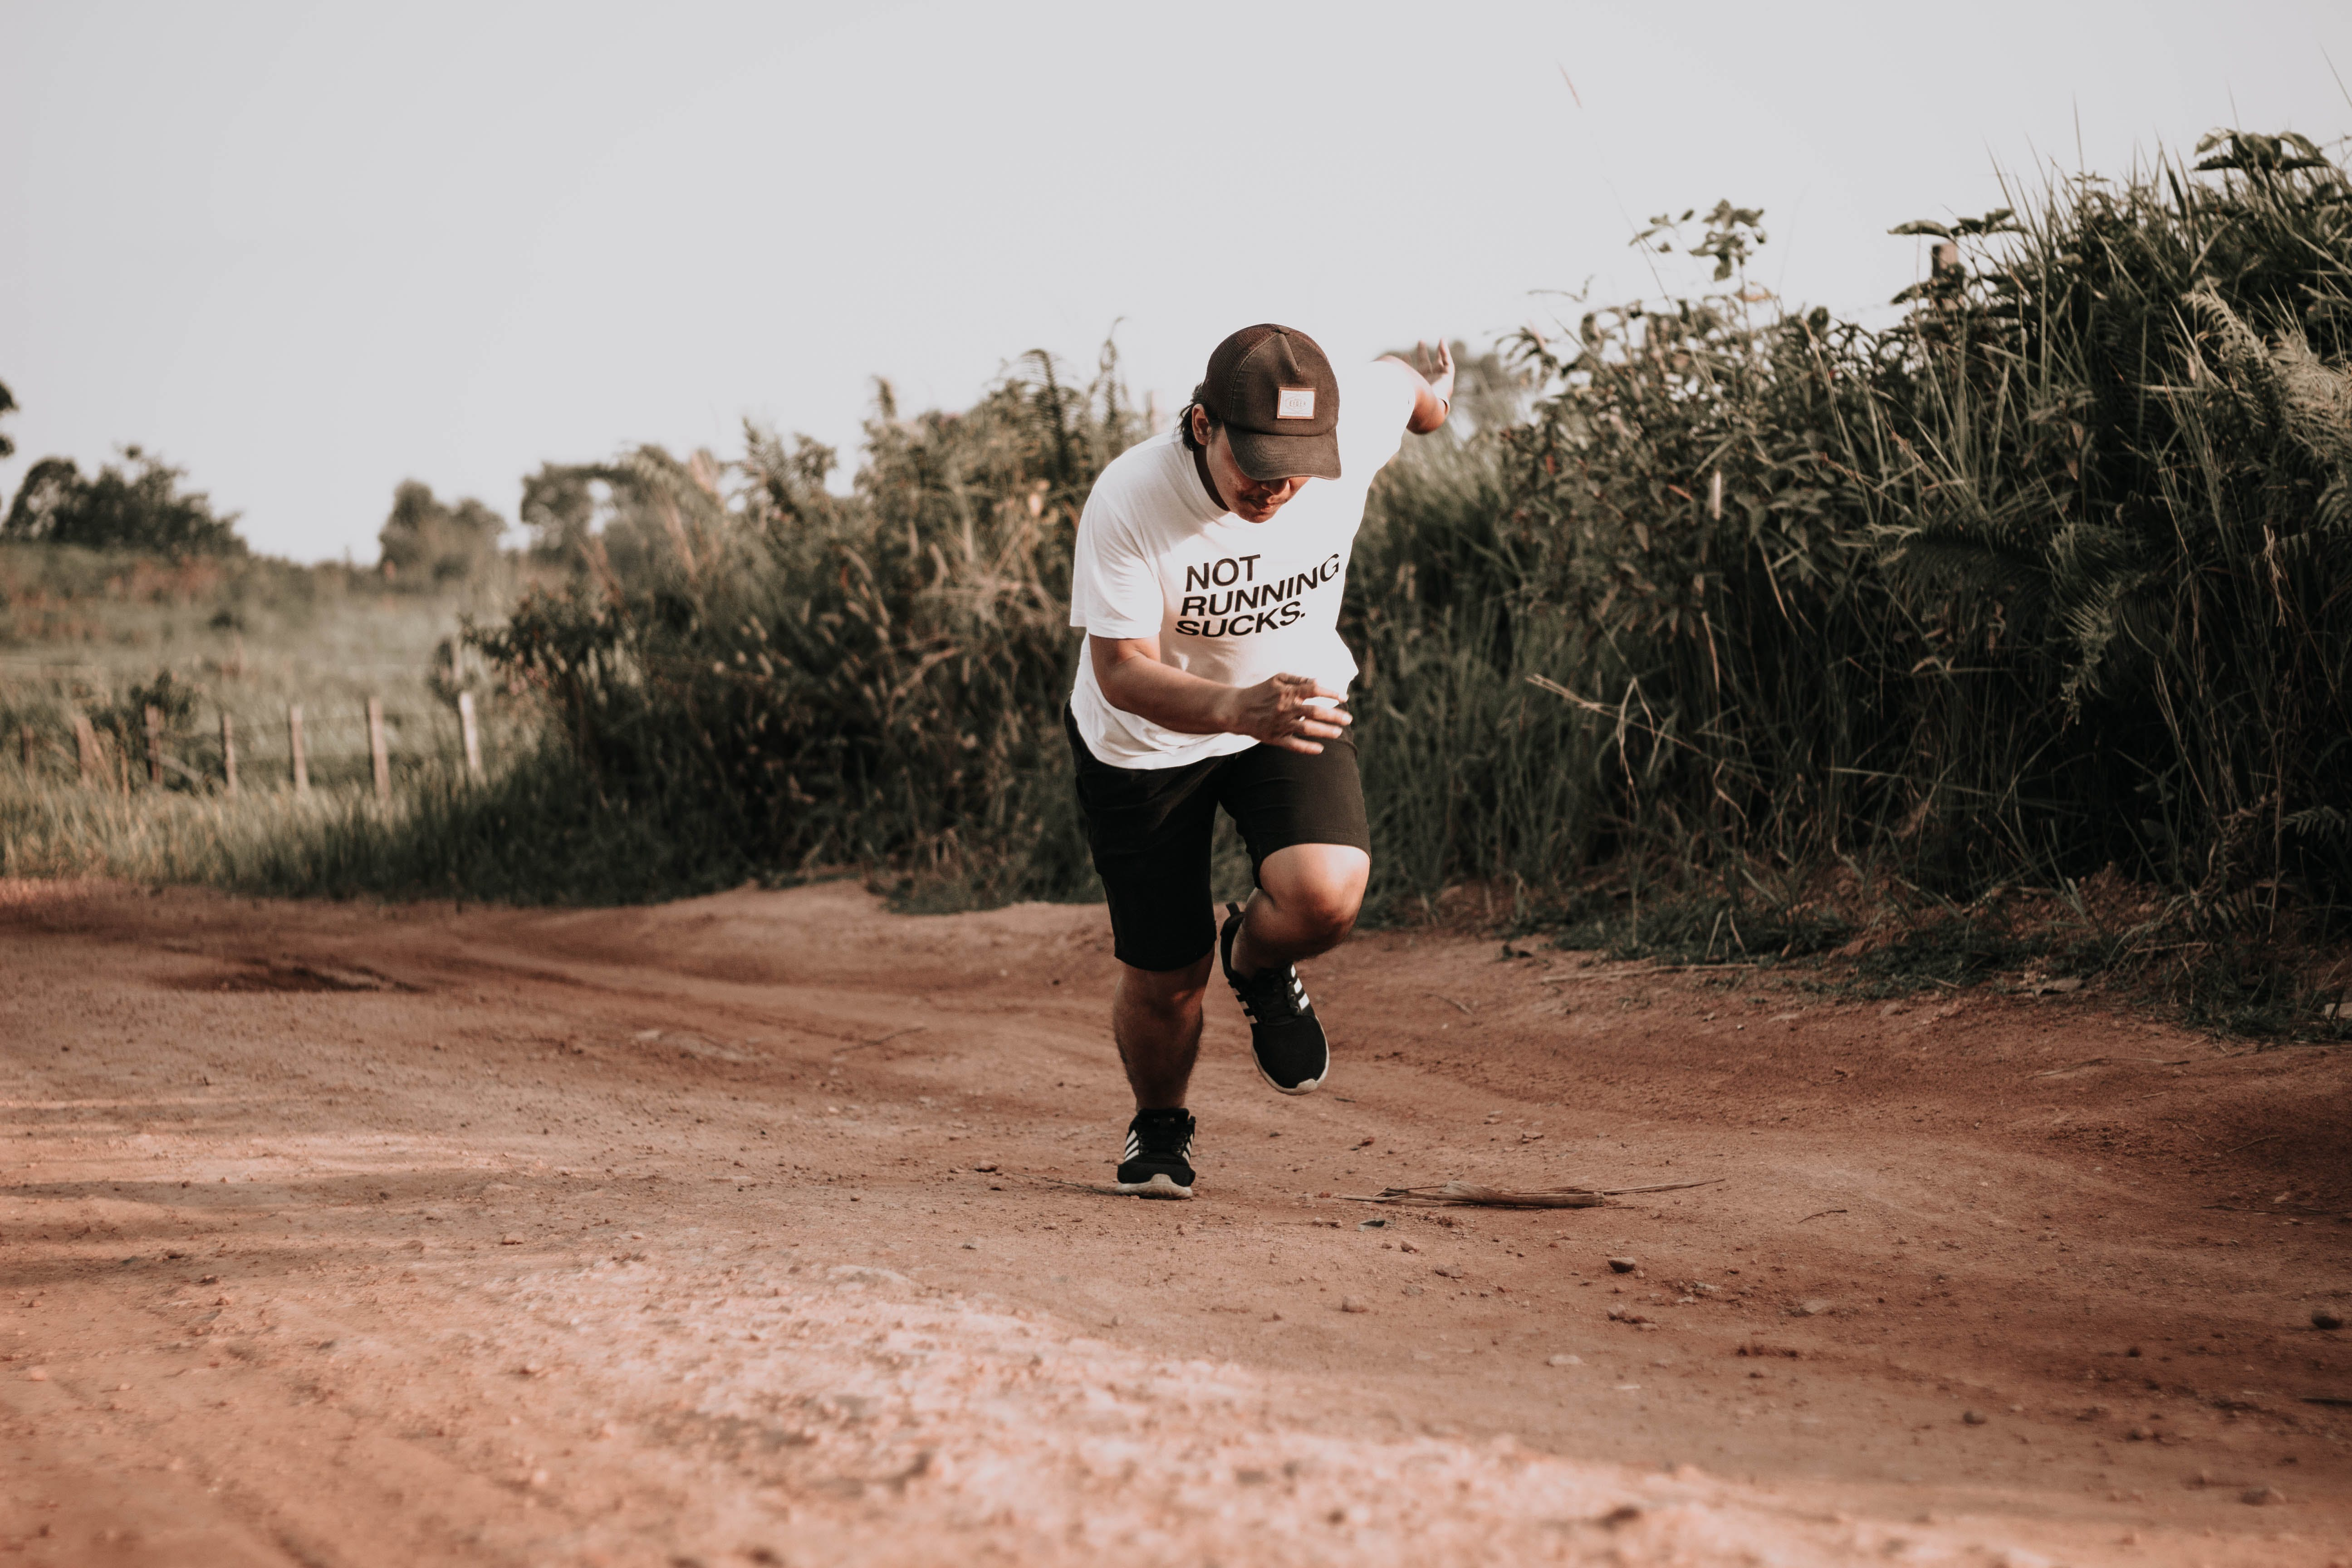 Man Running on Dirt Road